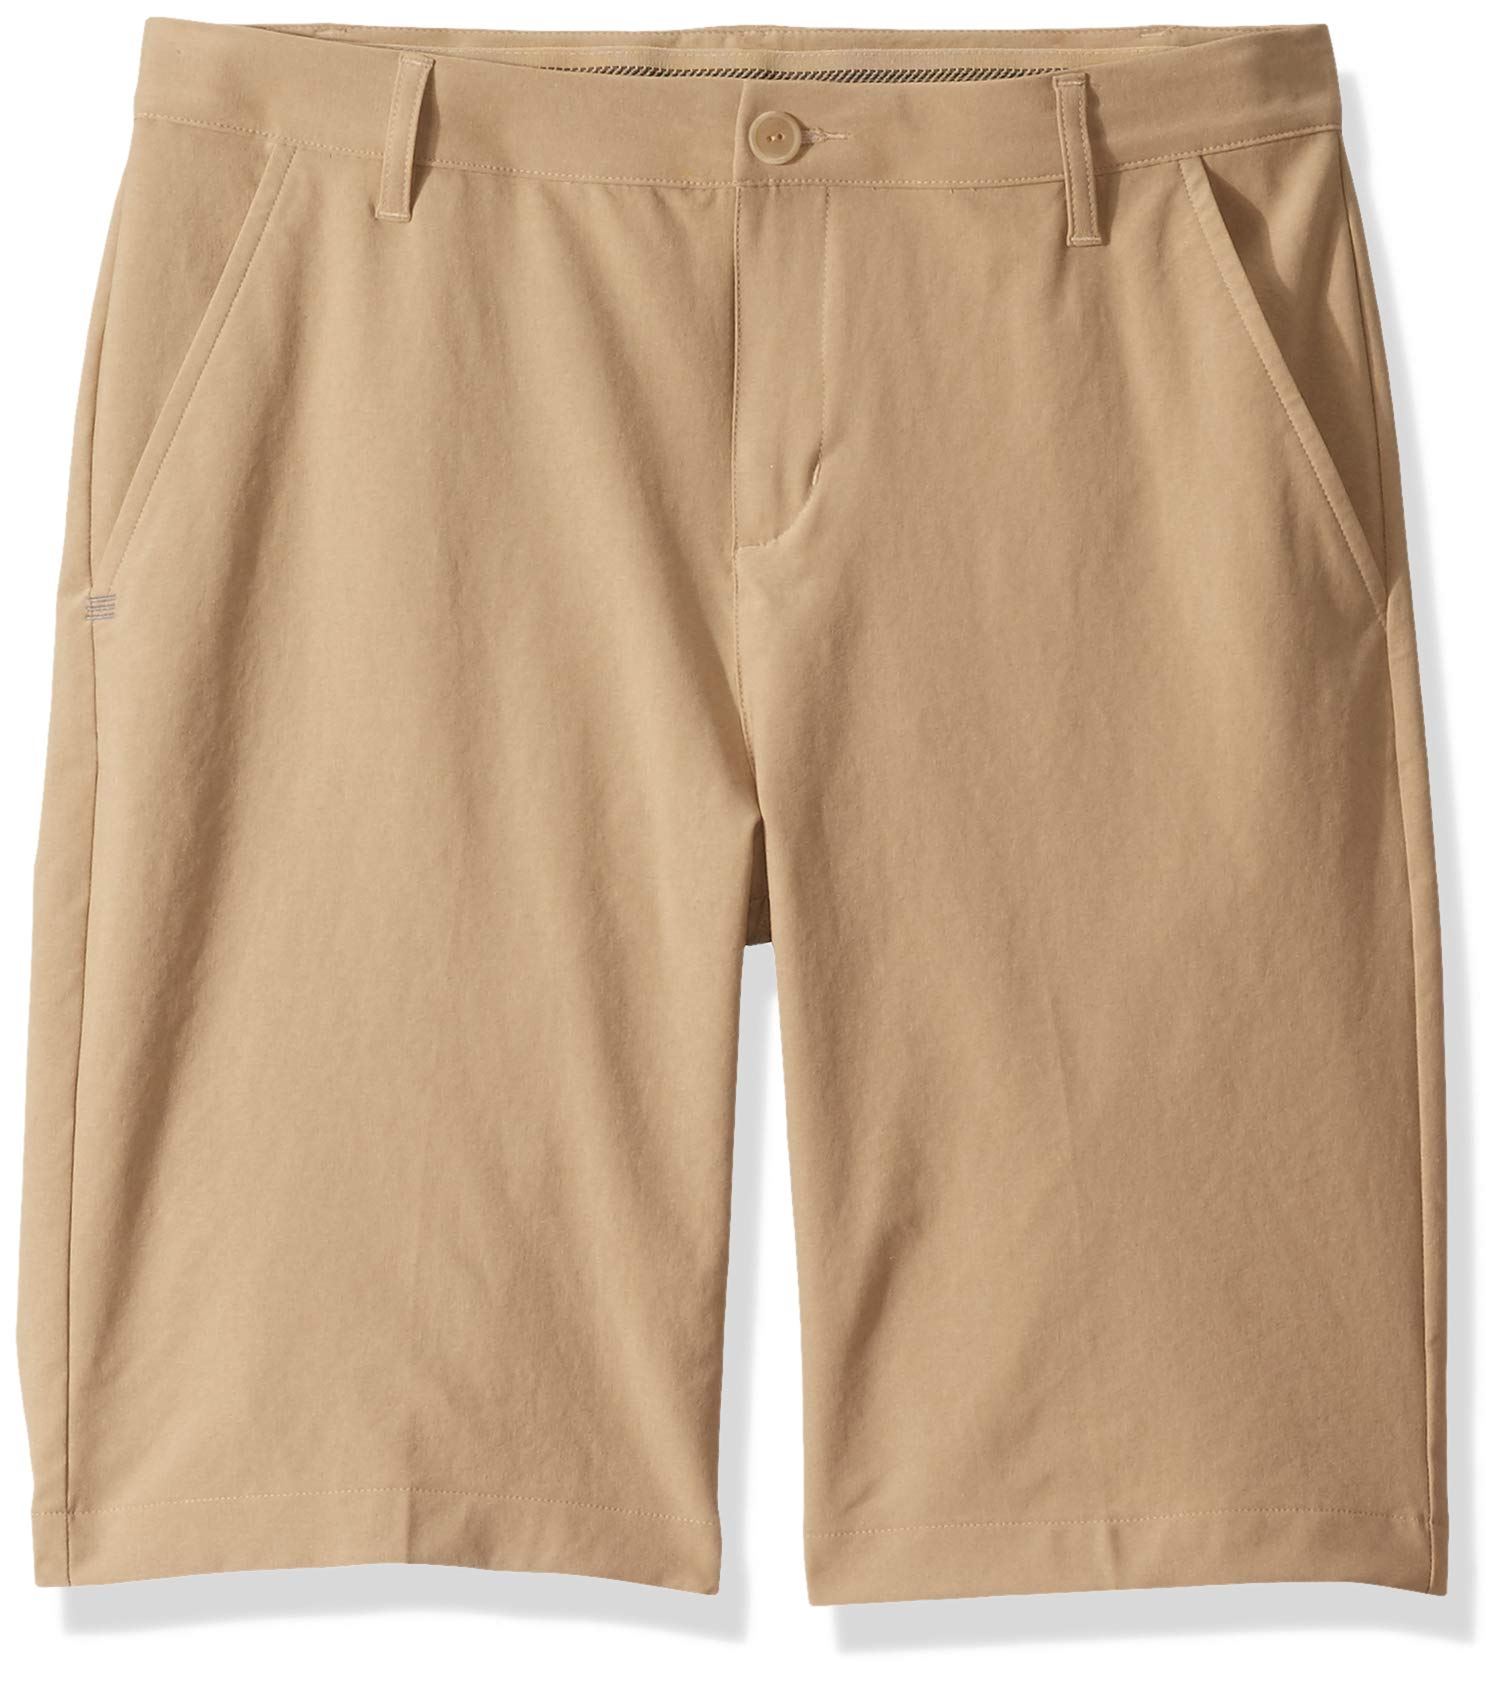 adidas Golf Solid Golf Shorts, Raw Gold, Medium by adidas